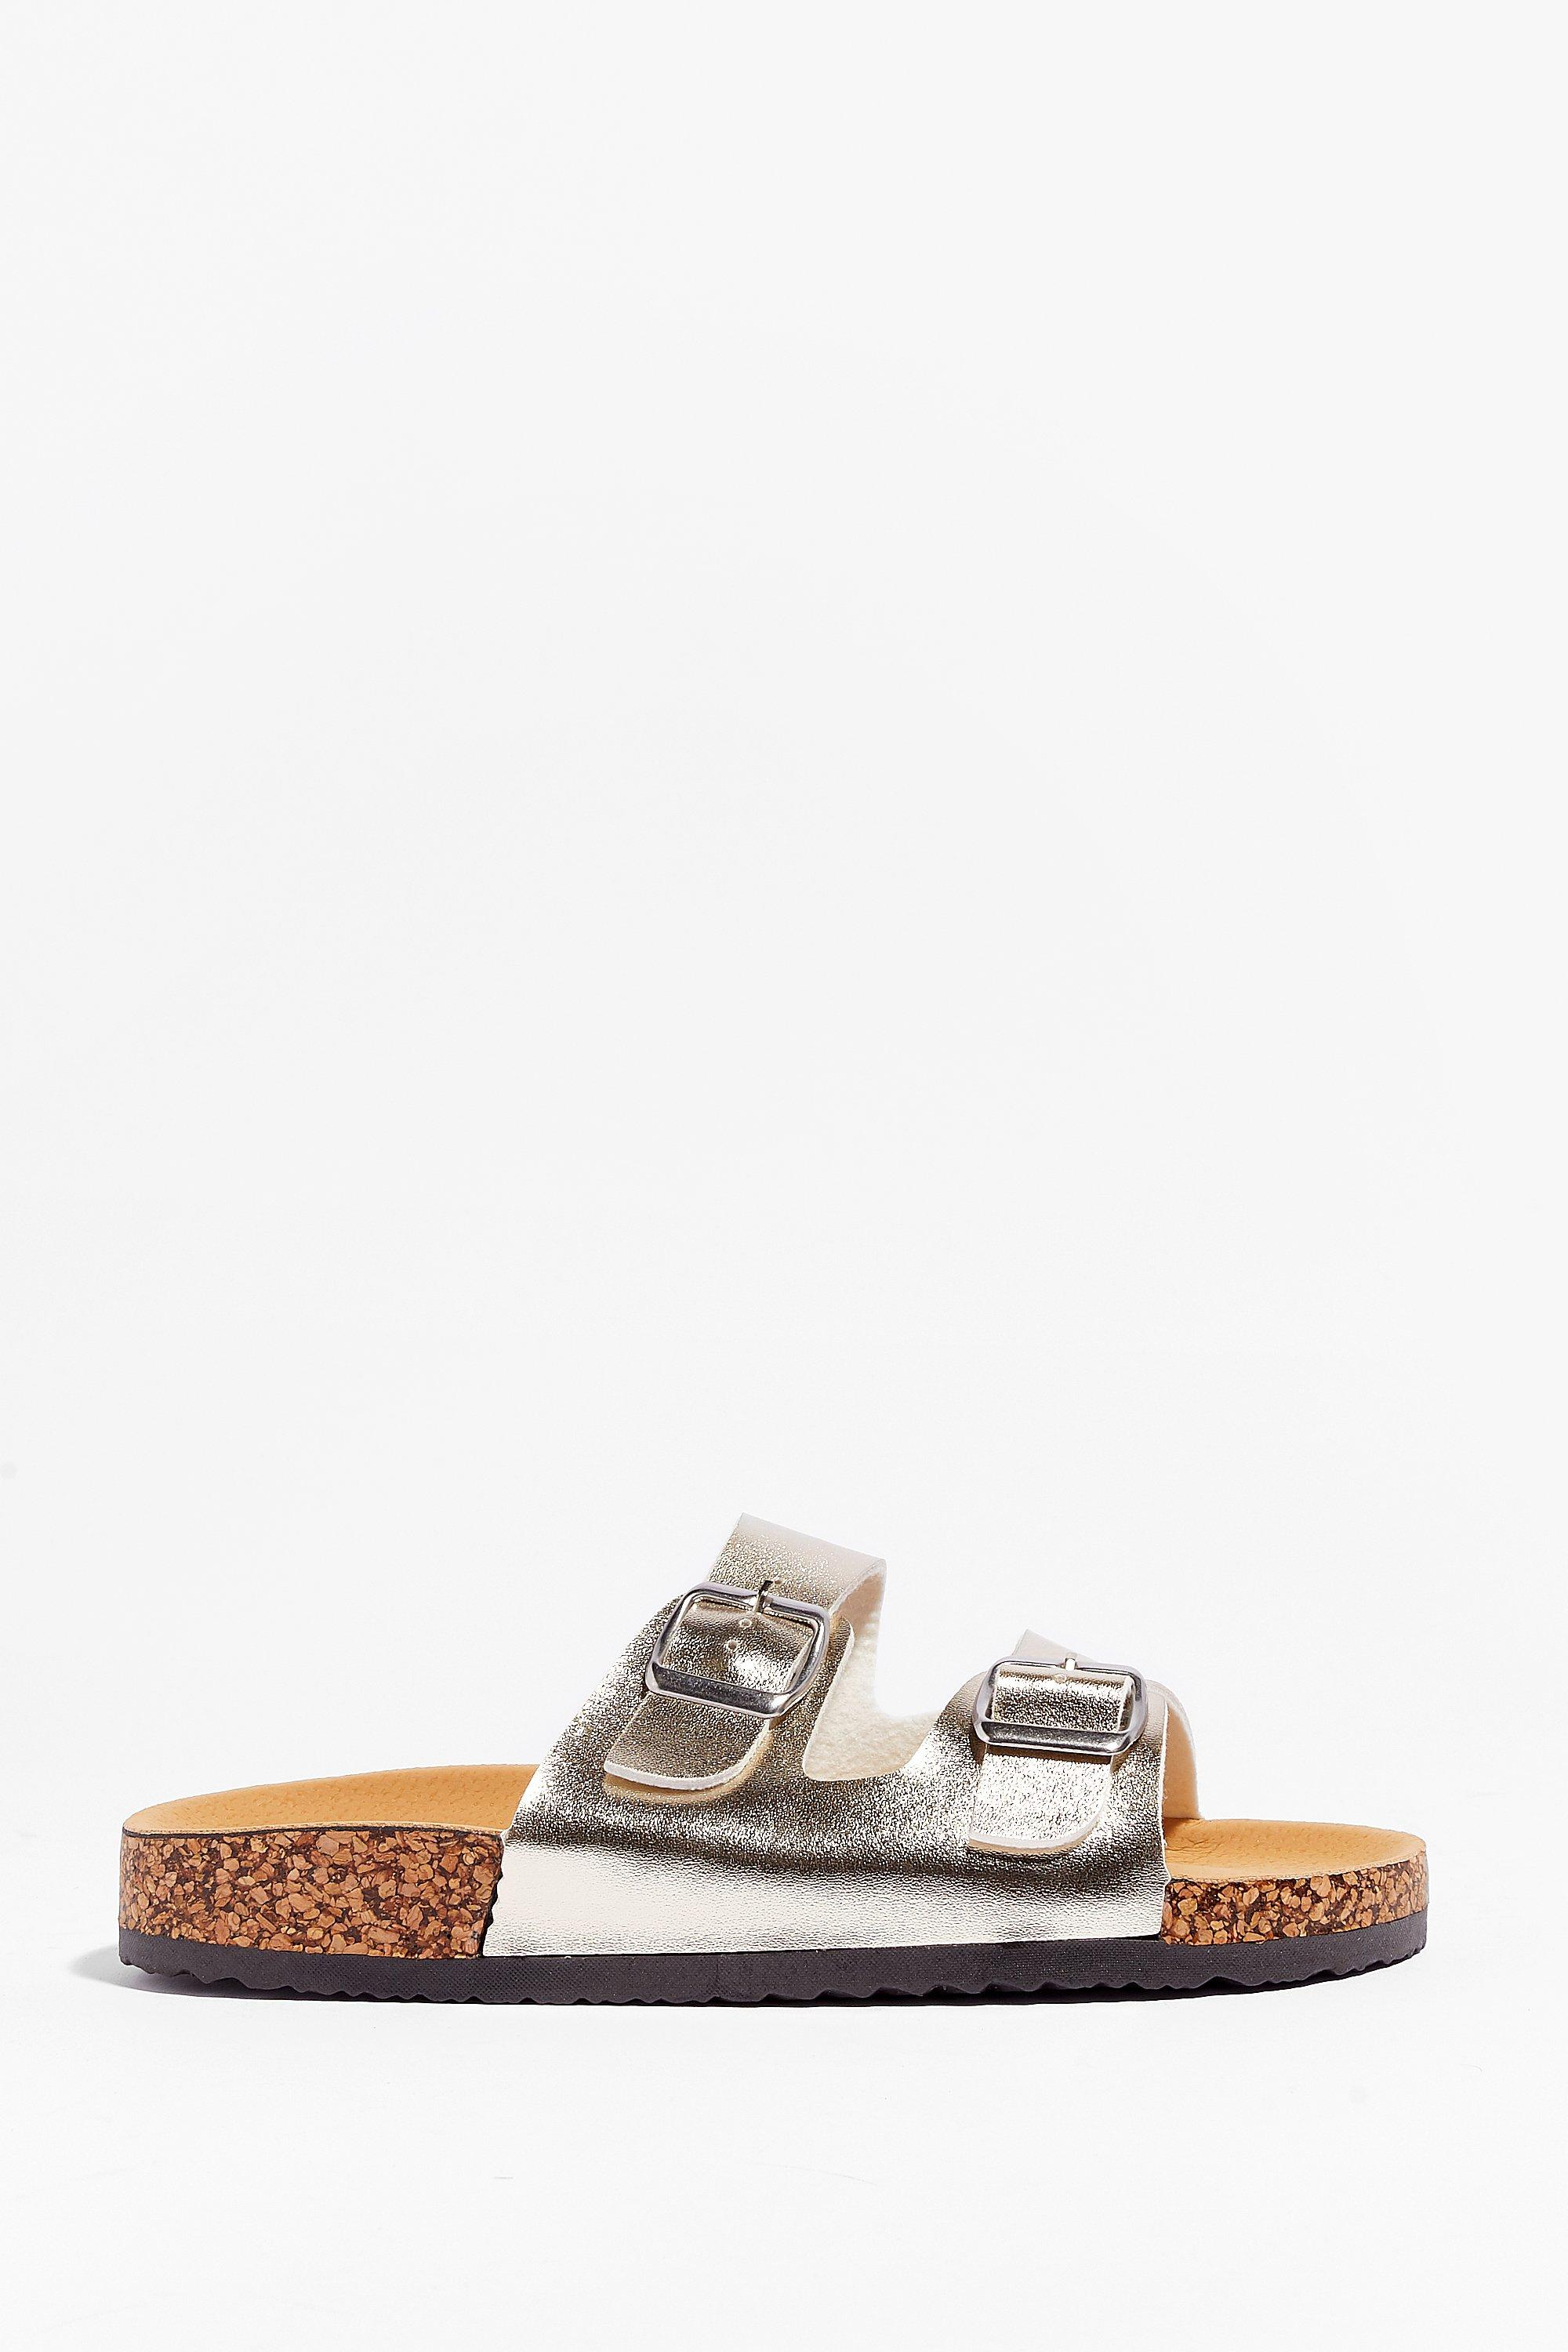 Image of Womens You're in Buckle Metallic Faux Leather Sandals - Gold